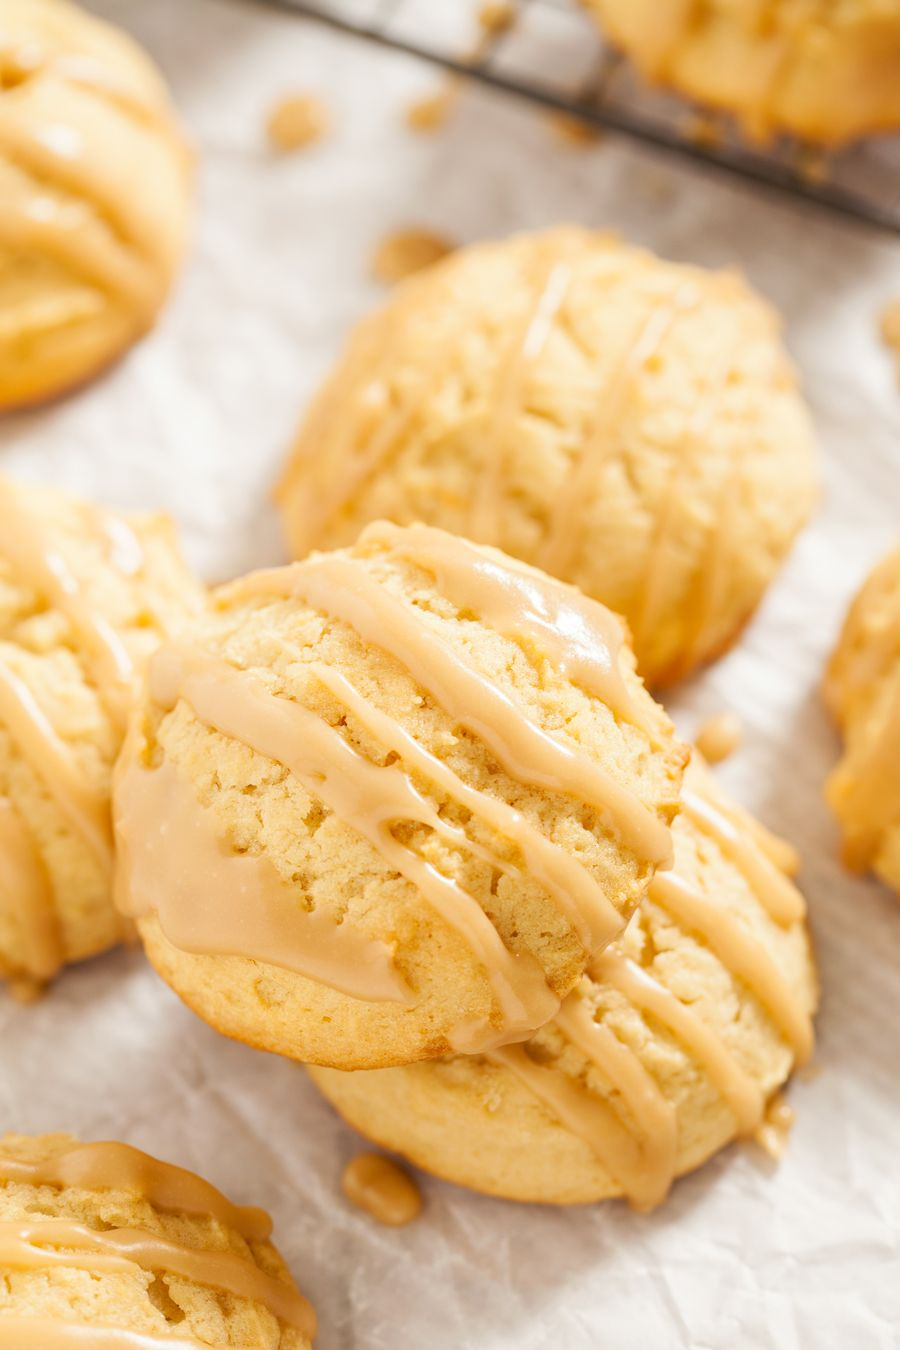 Amish Buttermilk Cookies Are So Light And Fluffy Cookies Cookierecipes Buttermilkcookies Amishrecipes Iamhomeste Buttermilk Cookies Amish Recipes Recipes